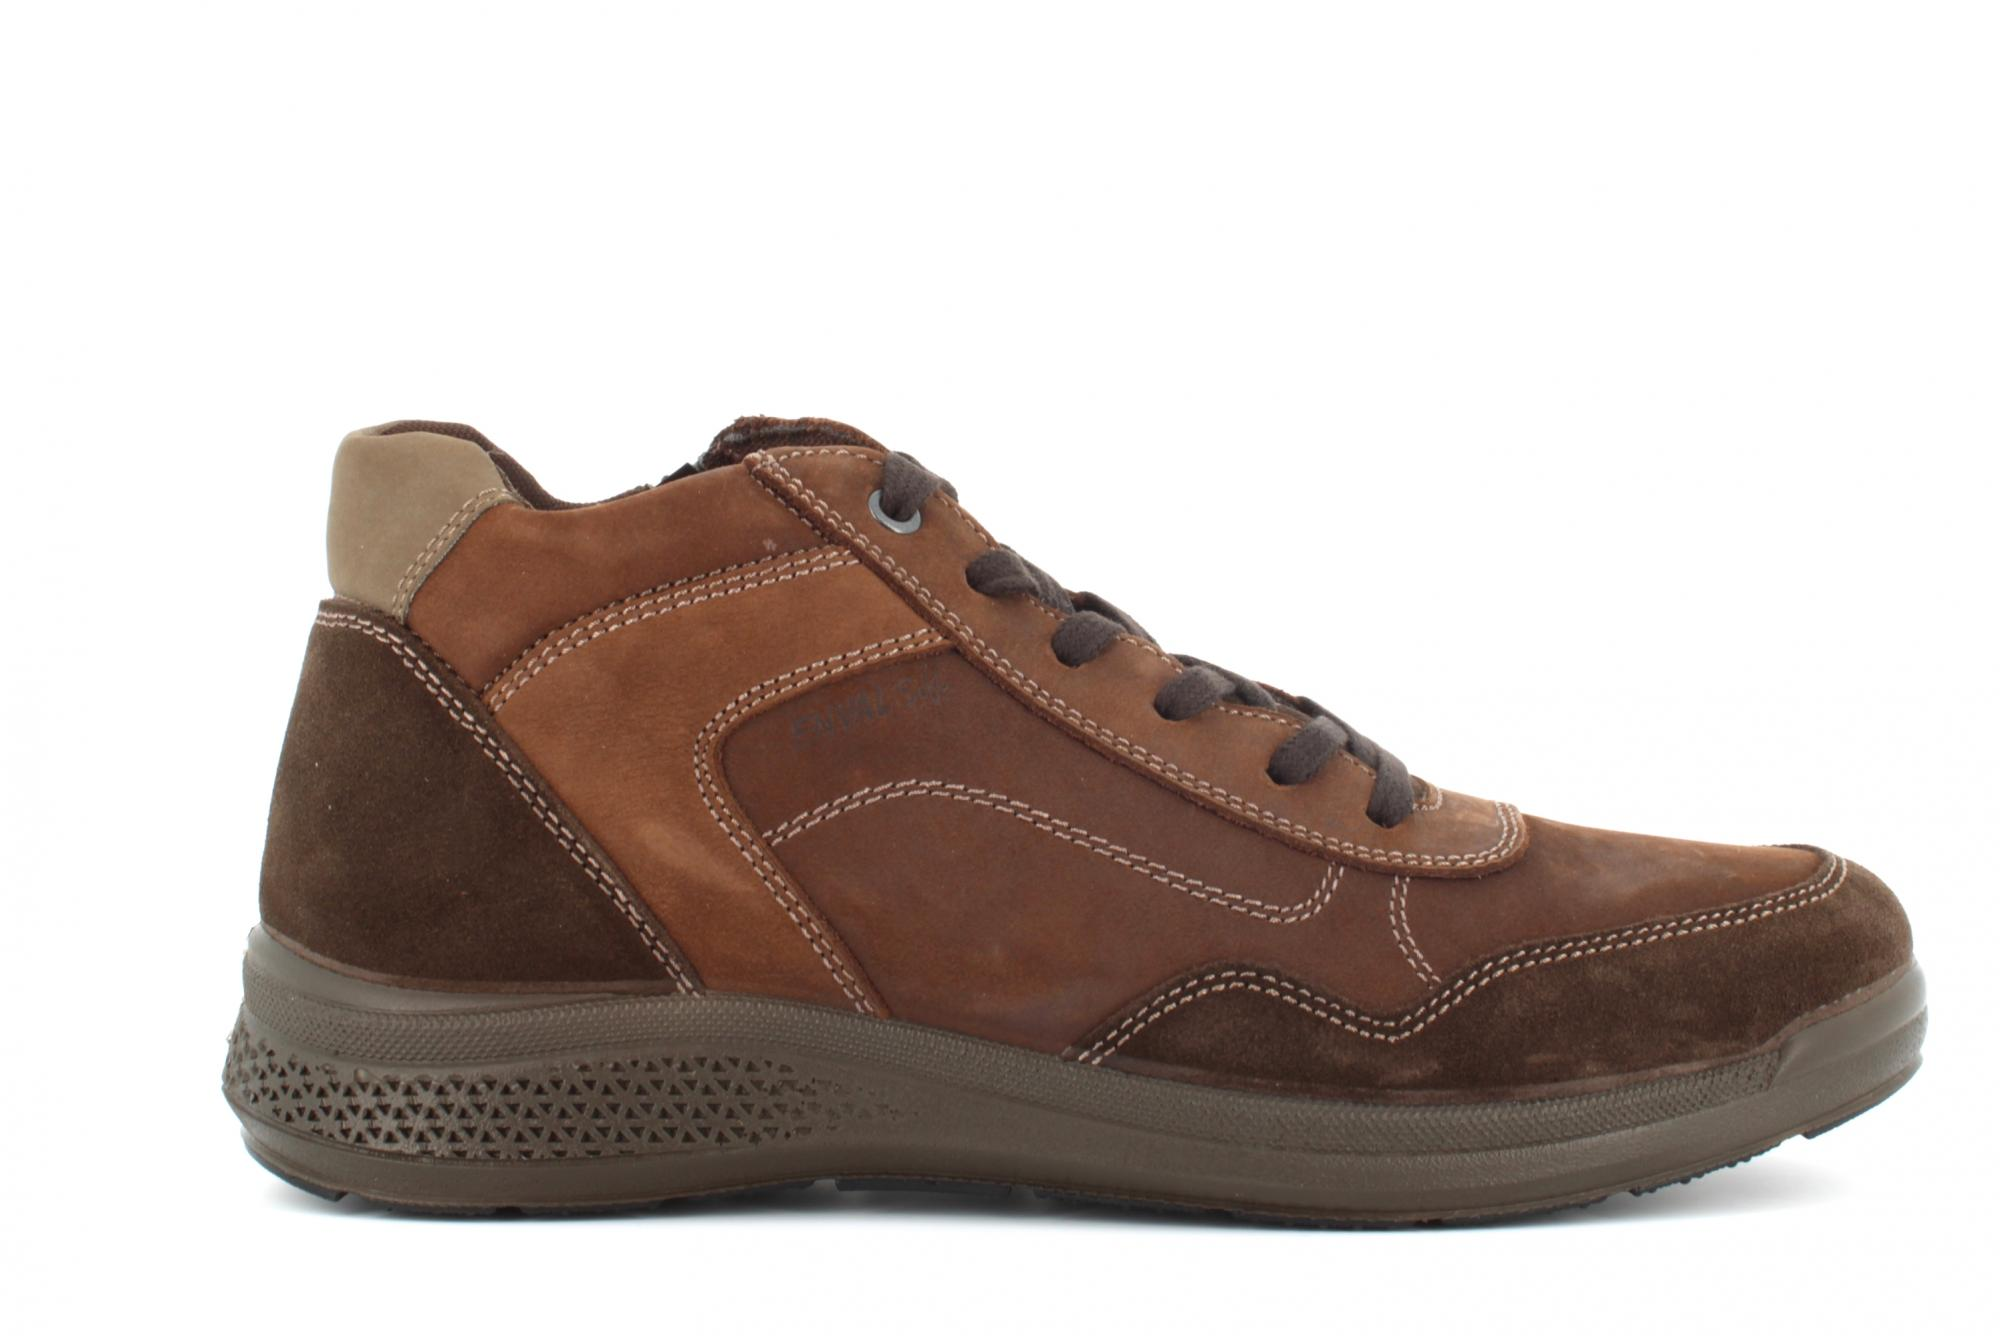 Enval Soft A19s chaussures para hommes chaussures 4229755 T.DI Mor